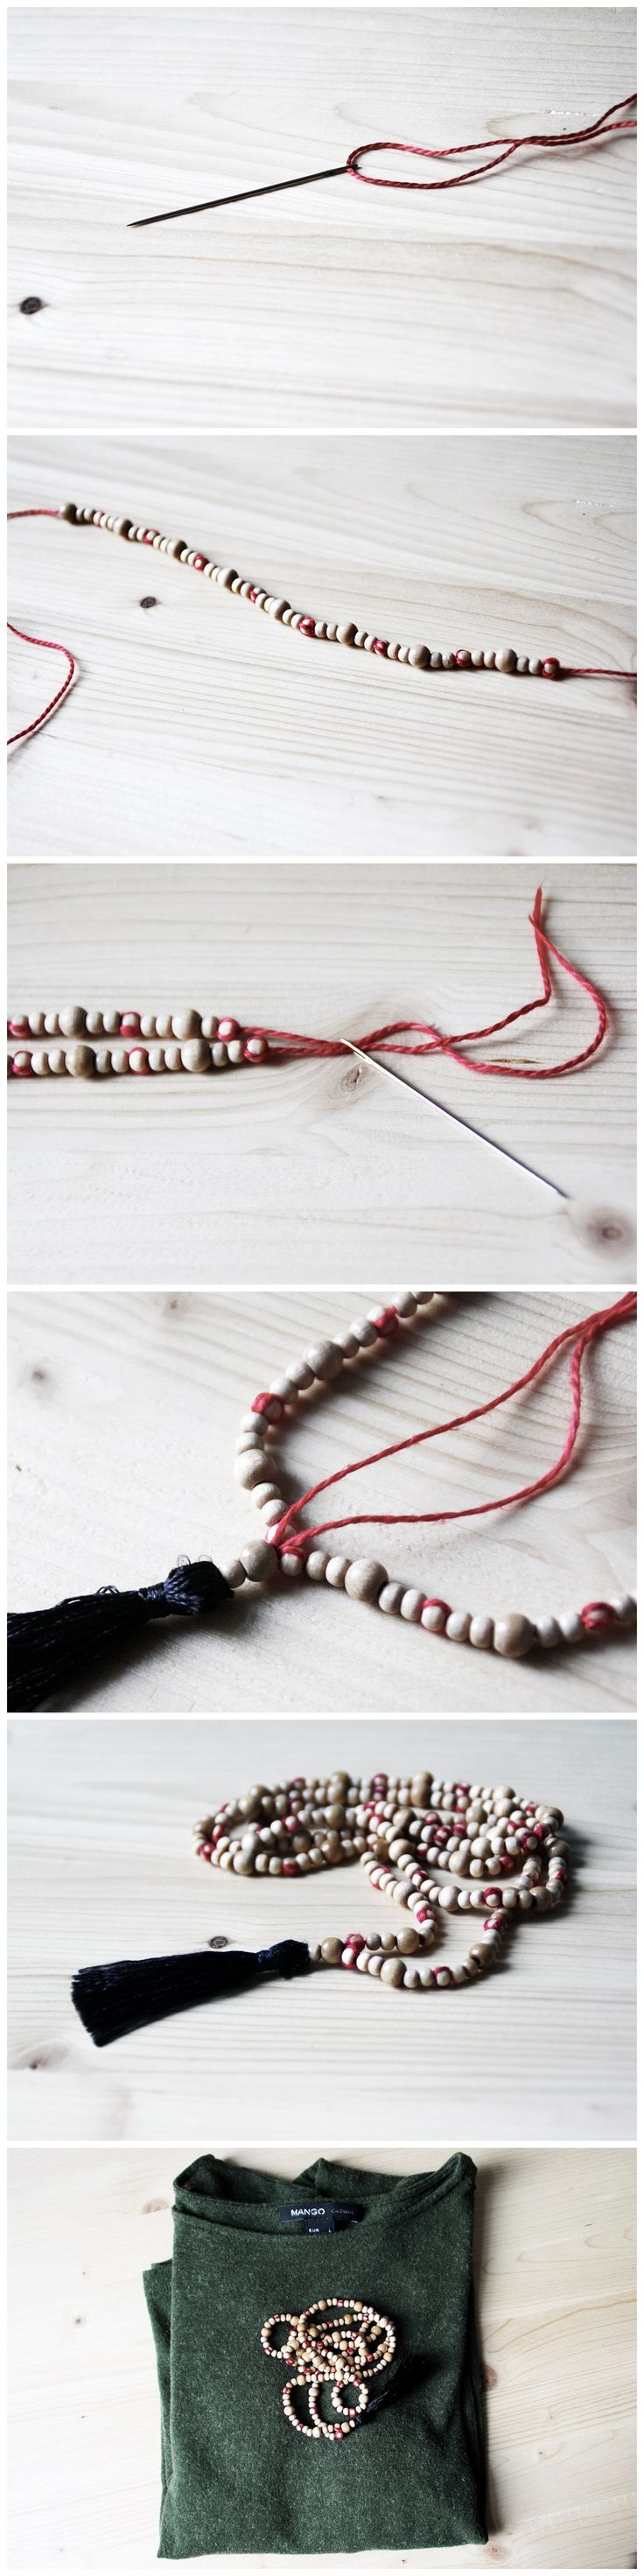 DIY Boho Jewelry: Tassel Chain with Wooden Beads